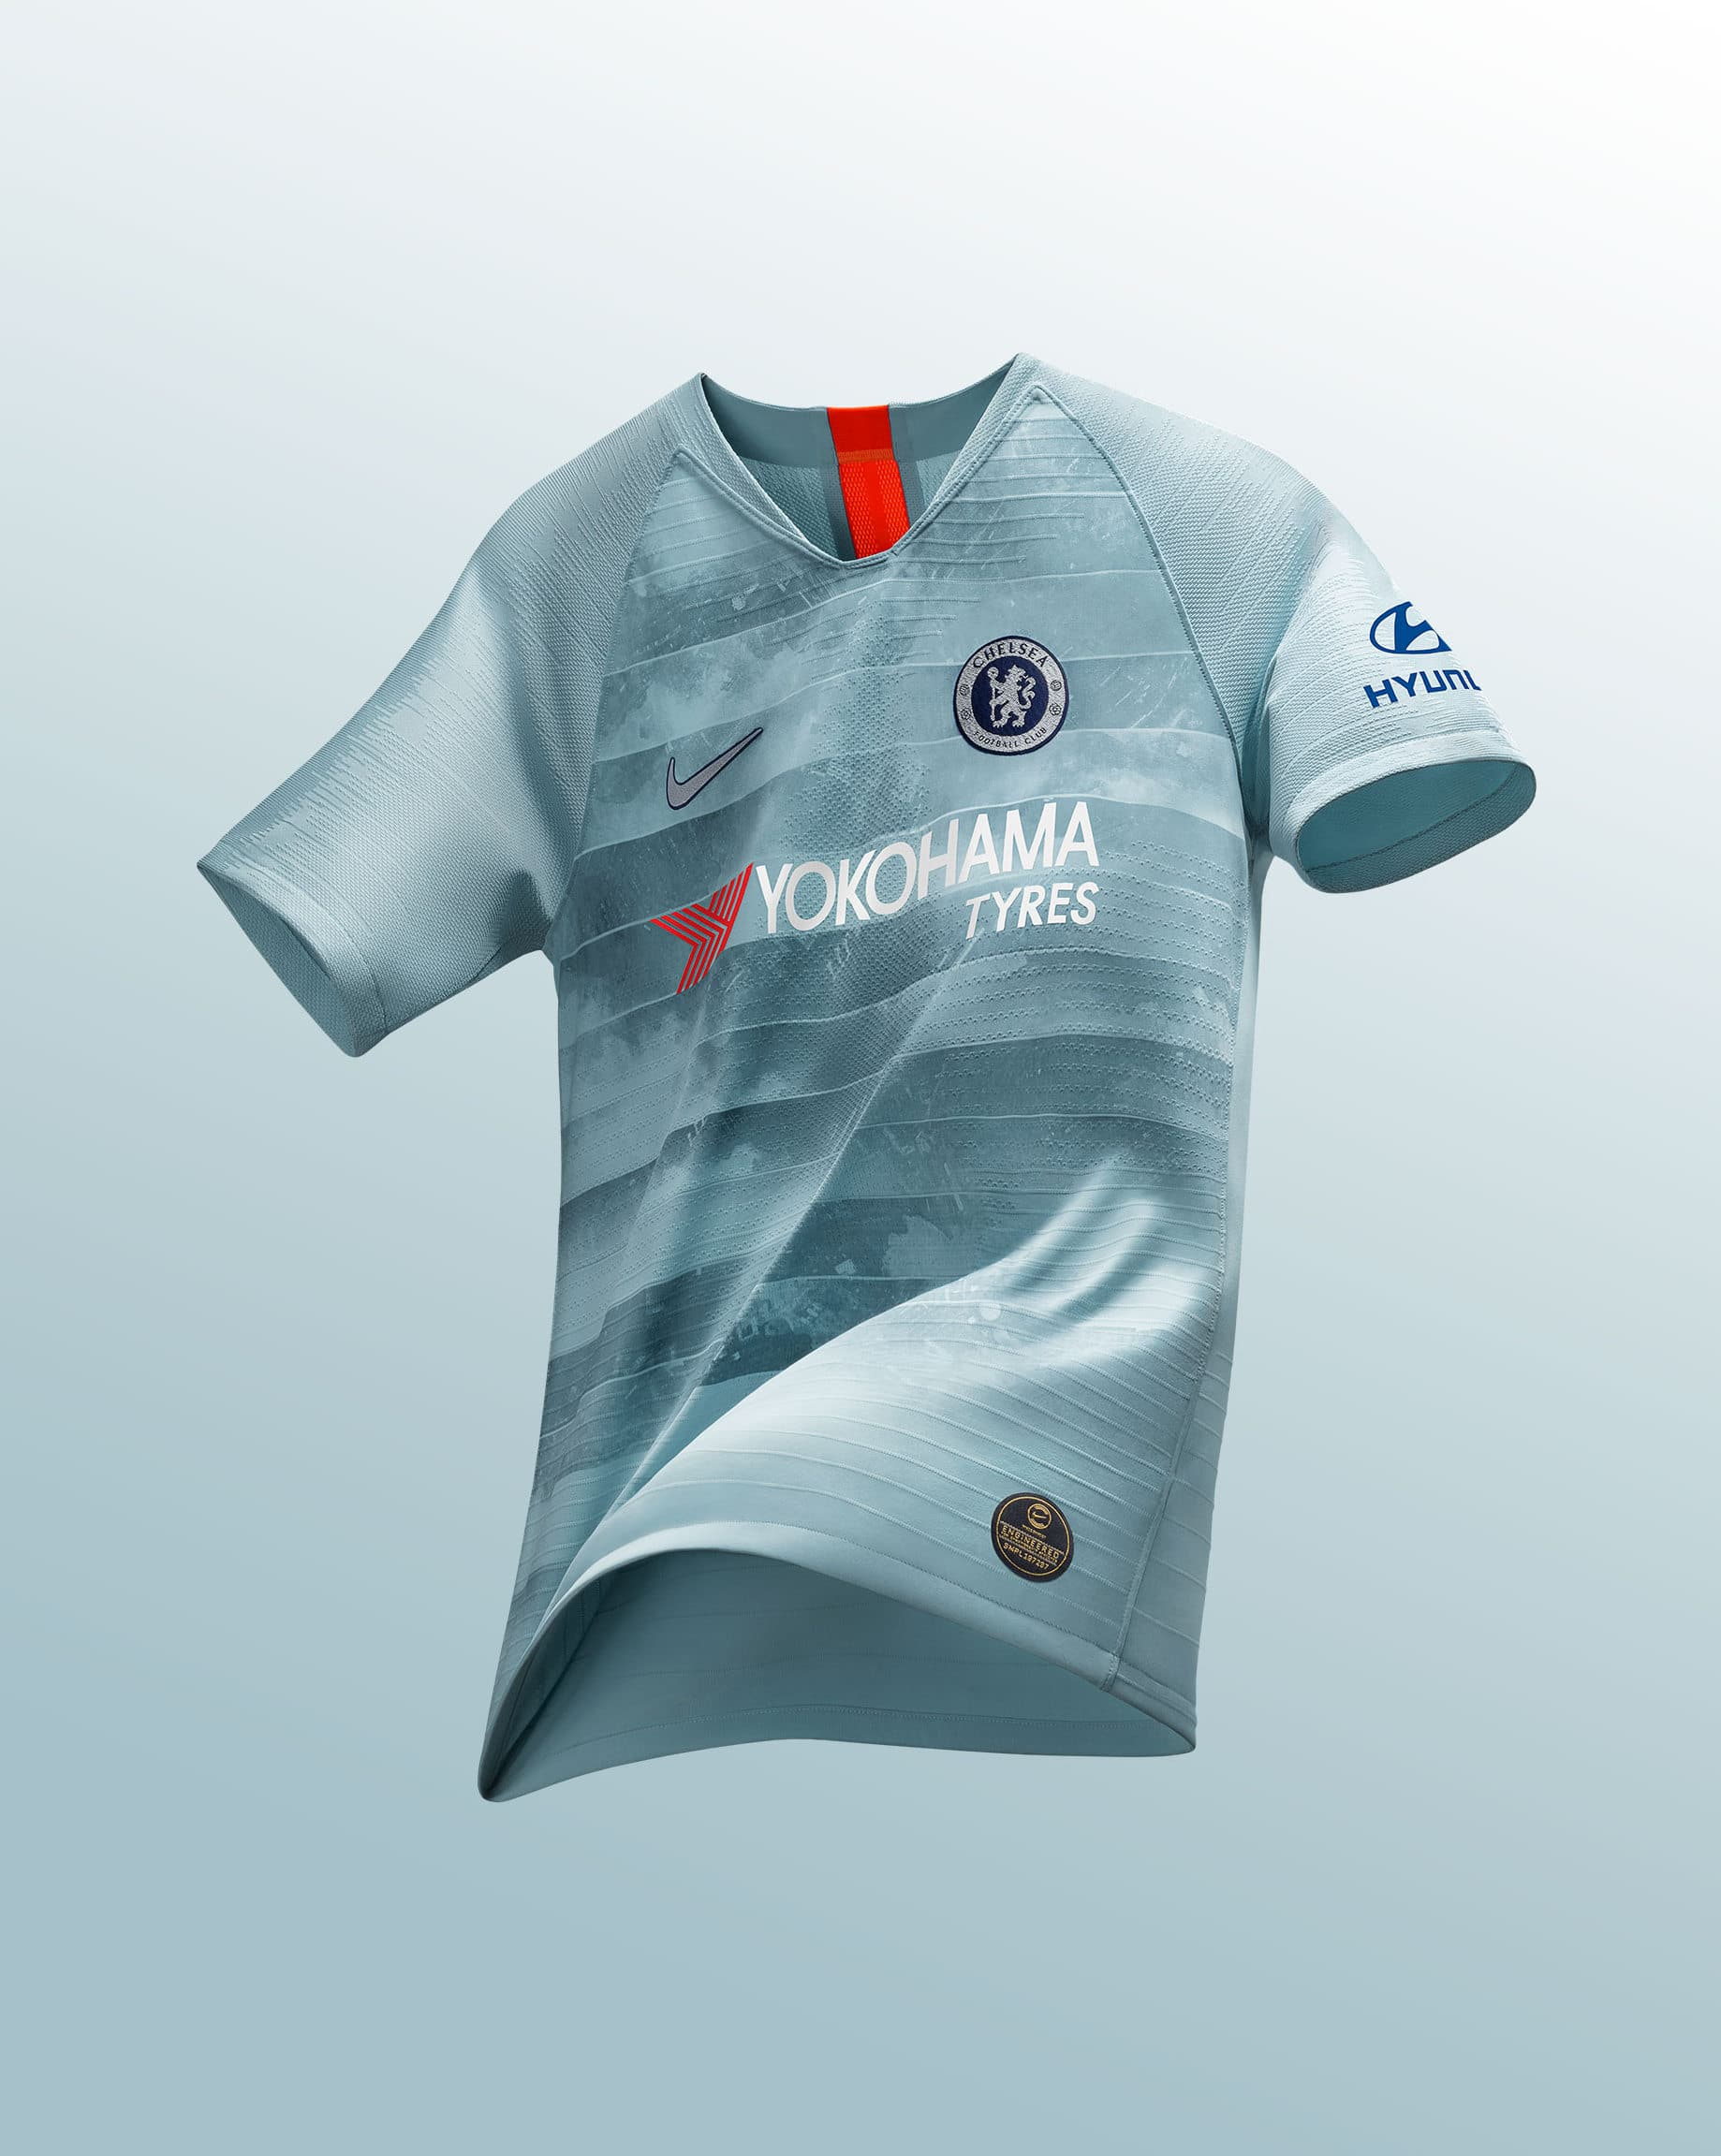 Chelsea Third Kit 2018/19 - NikeConnect